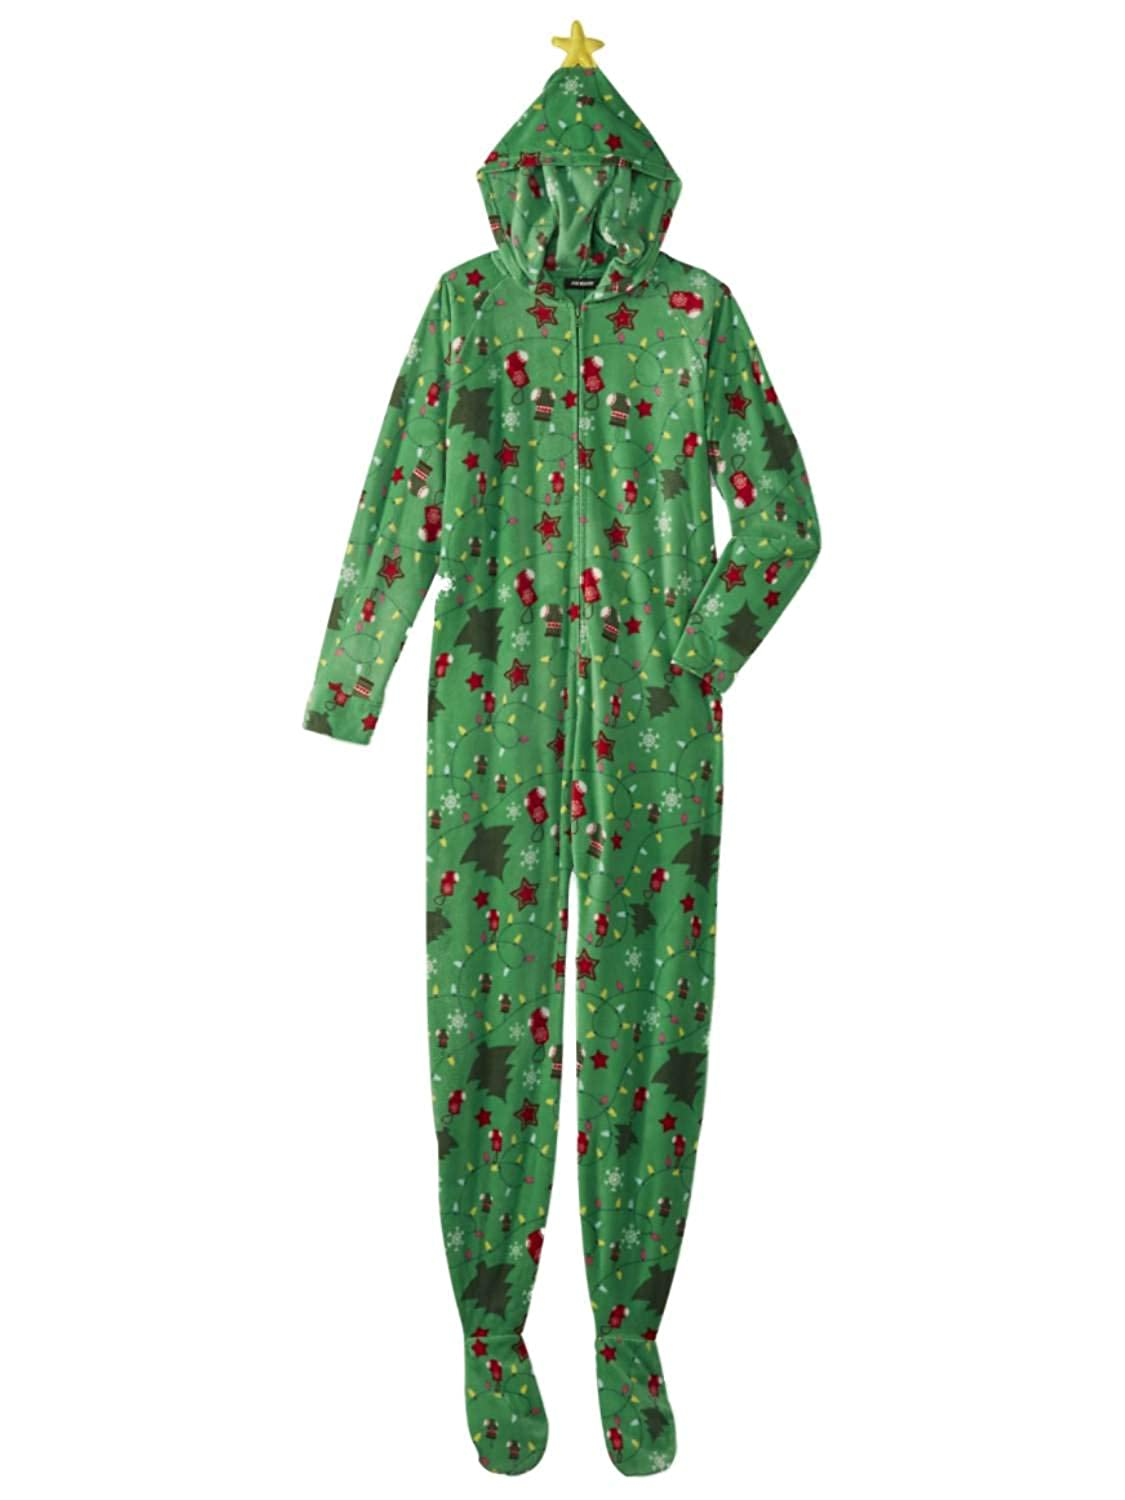 91dabe3bee Joe Boxer Womens Green Christmas Tree Blanket Sleeper Holiday Pajama Hooded  Union Suit at Amazon Women s Clothing store